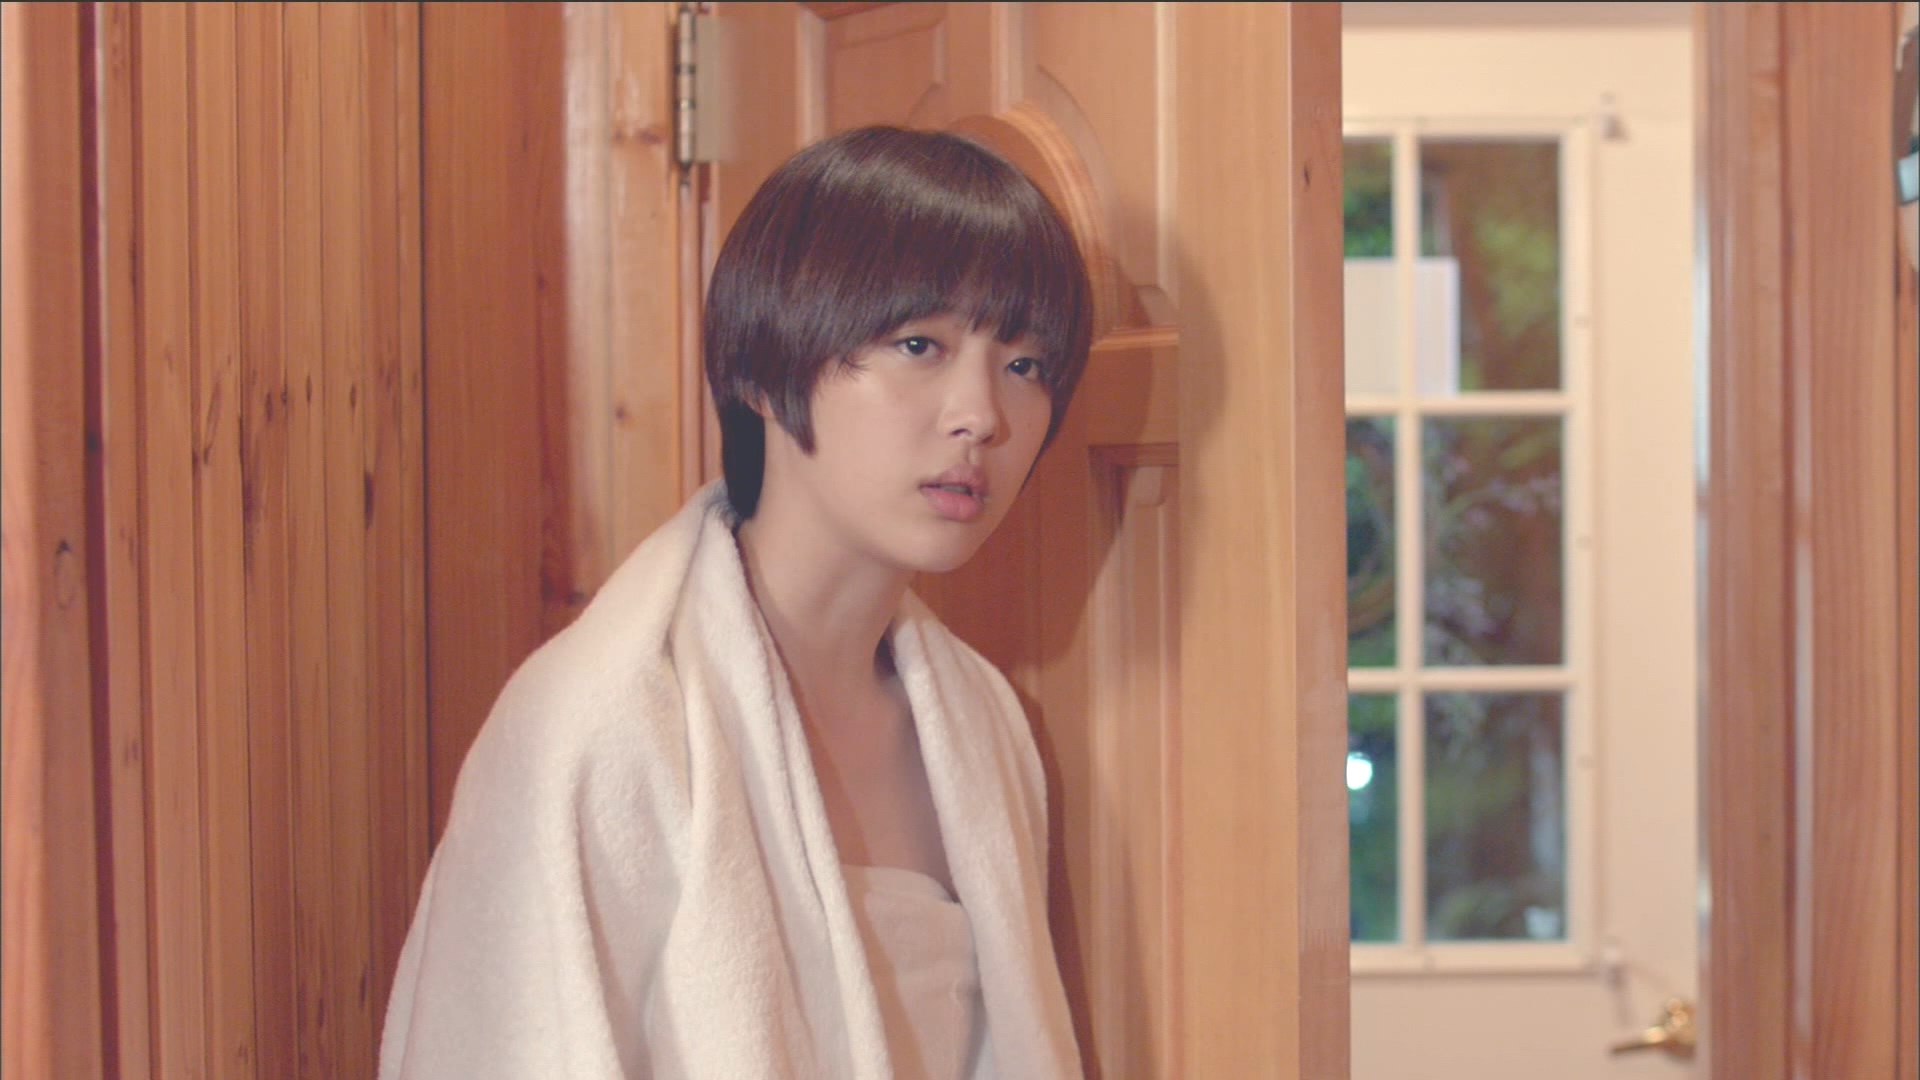 GRAVURE-DOTCOM school To the Beautiful You (Hana Kimi Korean Version) Episode 3